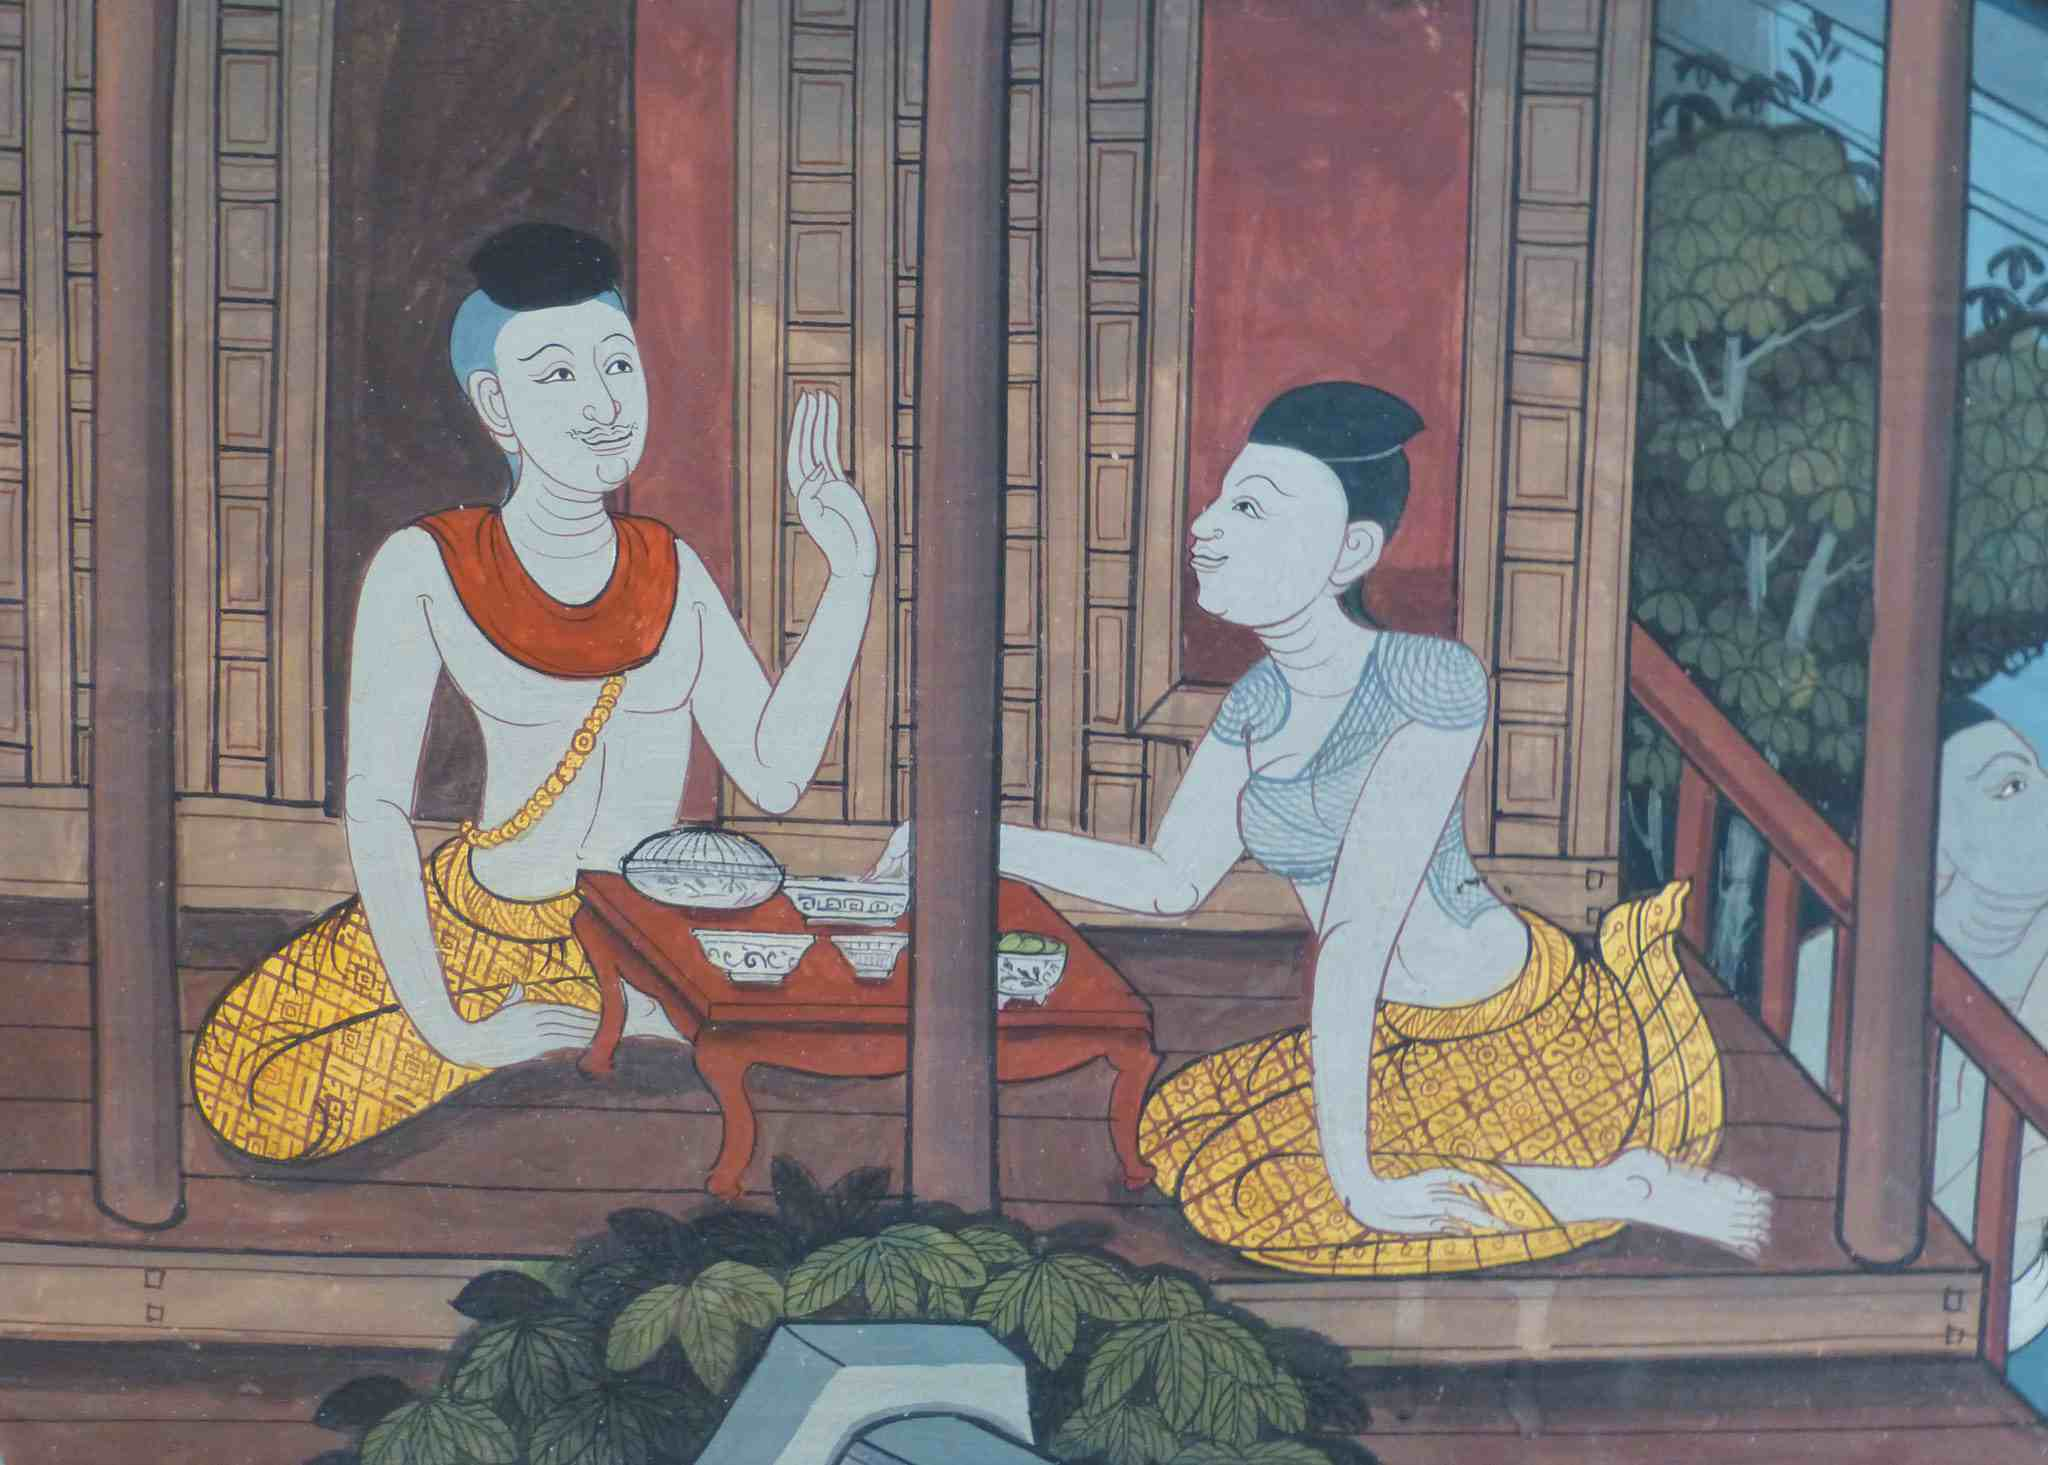 Painting of Dhammadinna and Viskha from from a mural at Wat Pho, a temple in Bangkok, Thailand.